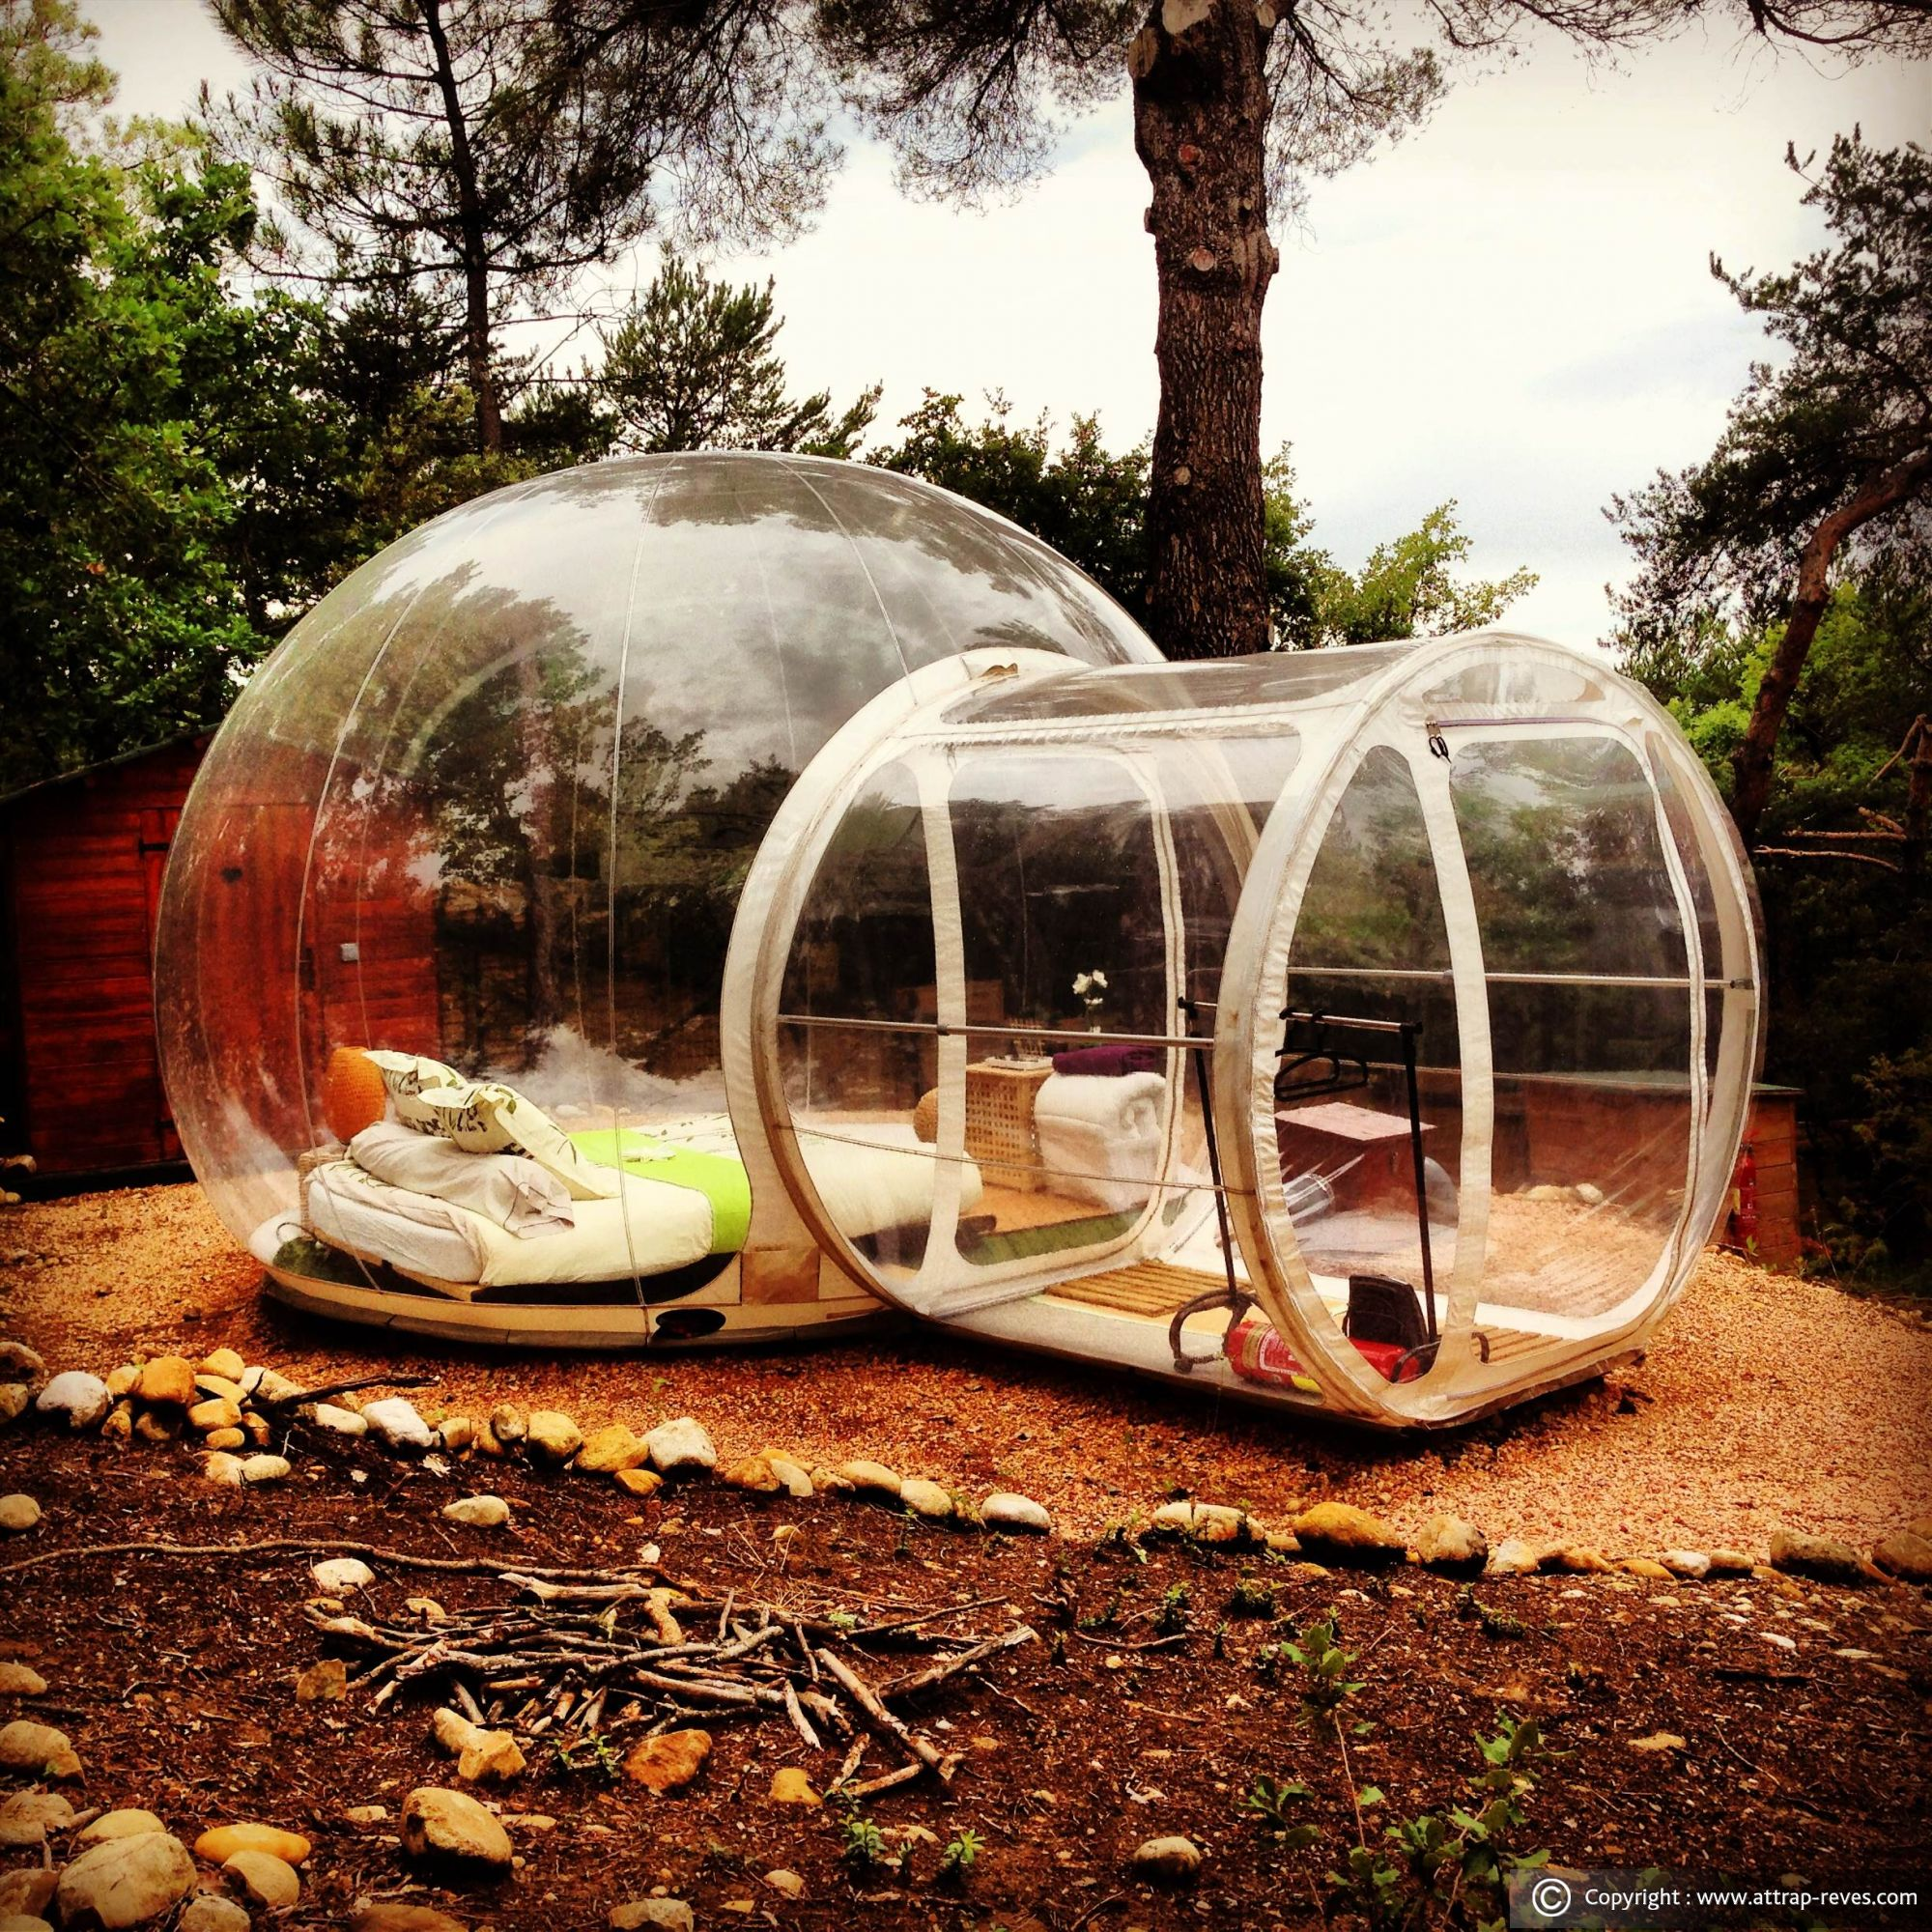 Attrap 39 r ves bubble hotel at montagnac montpezat for an unusual night Attrap reves hotel